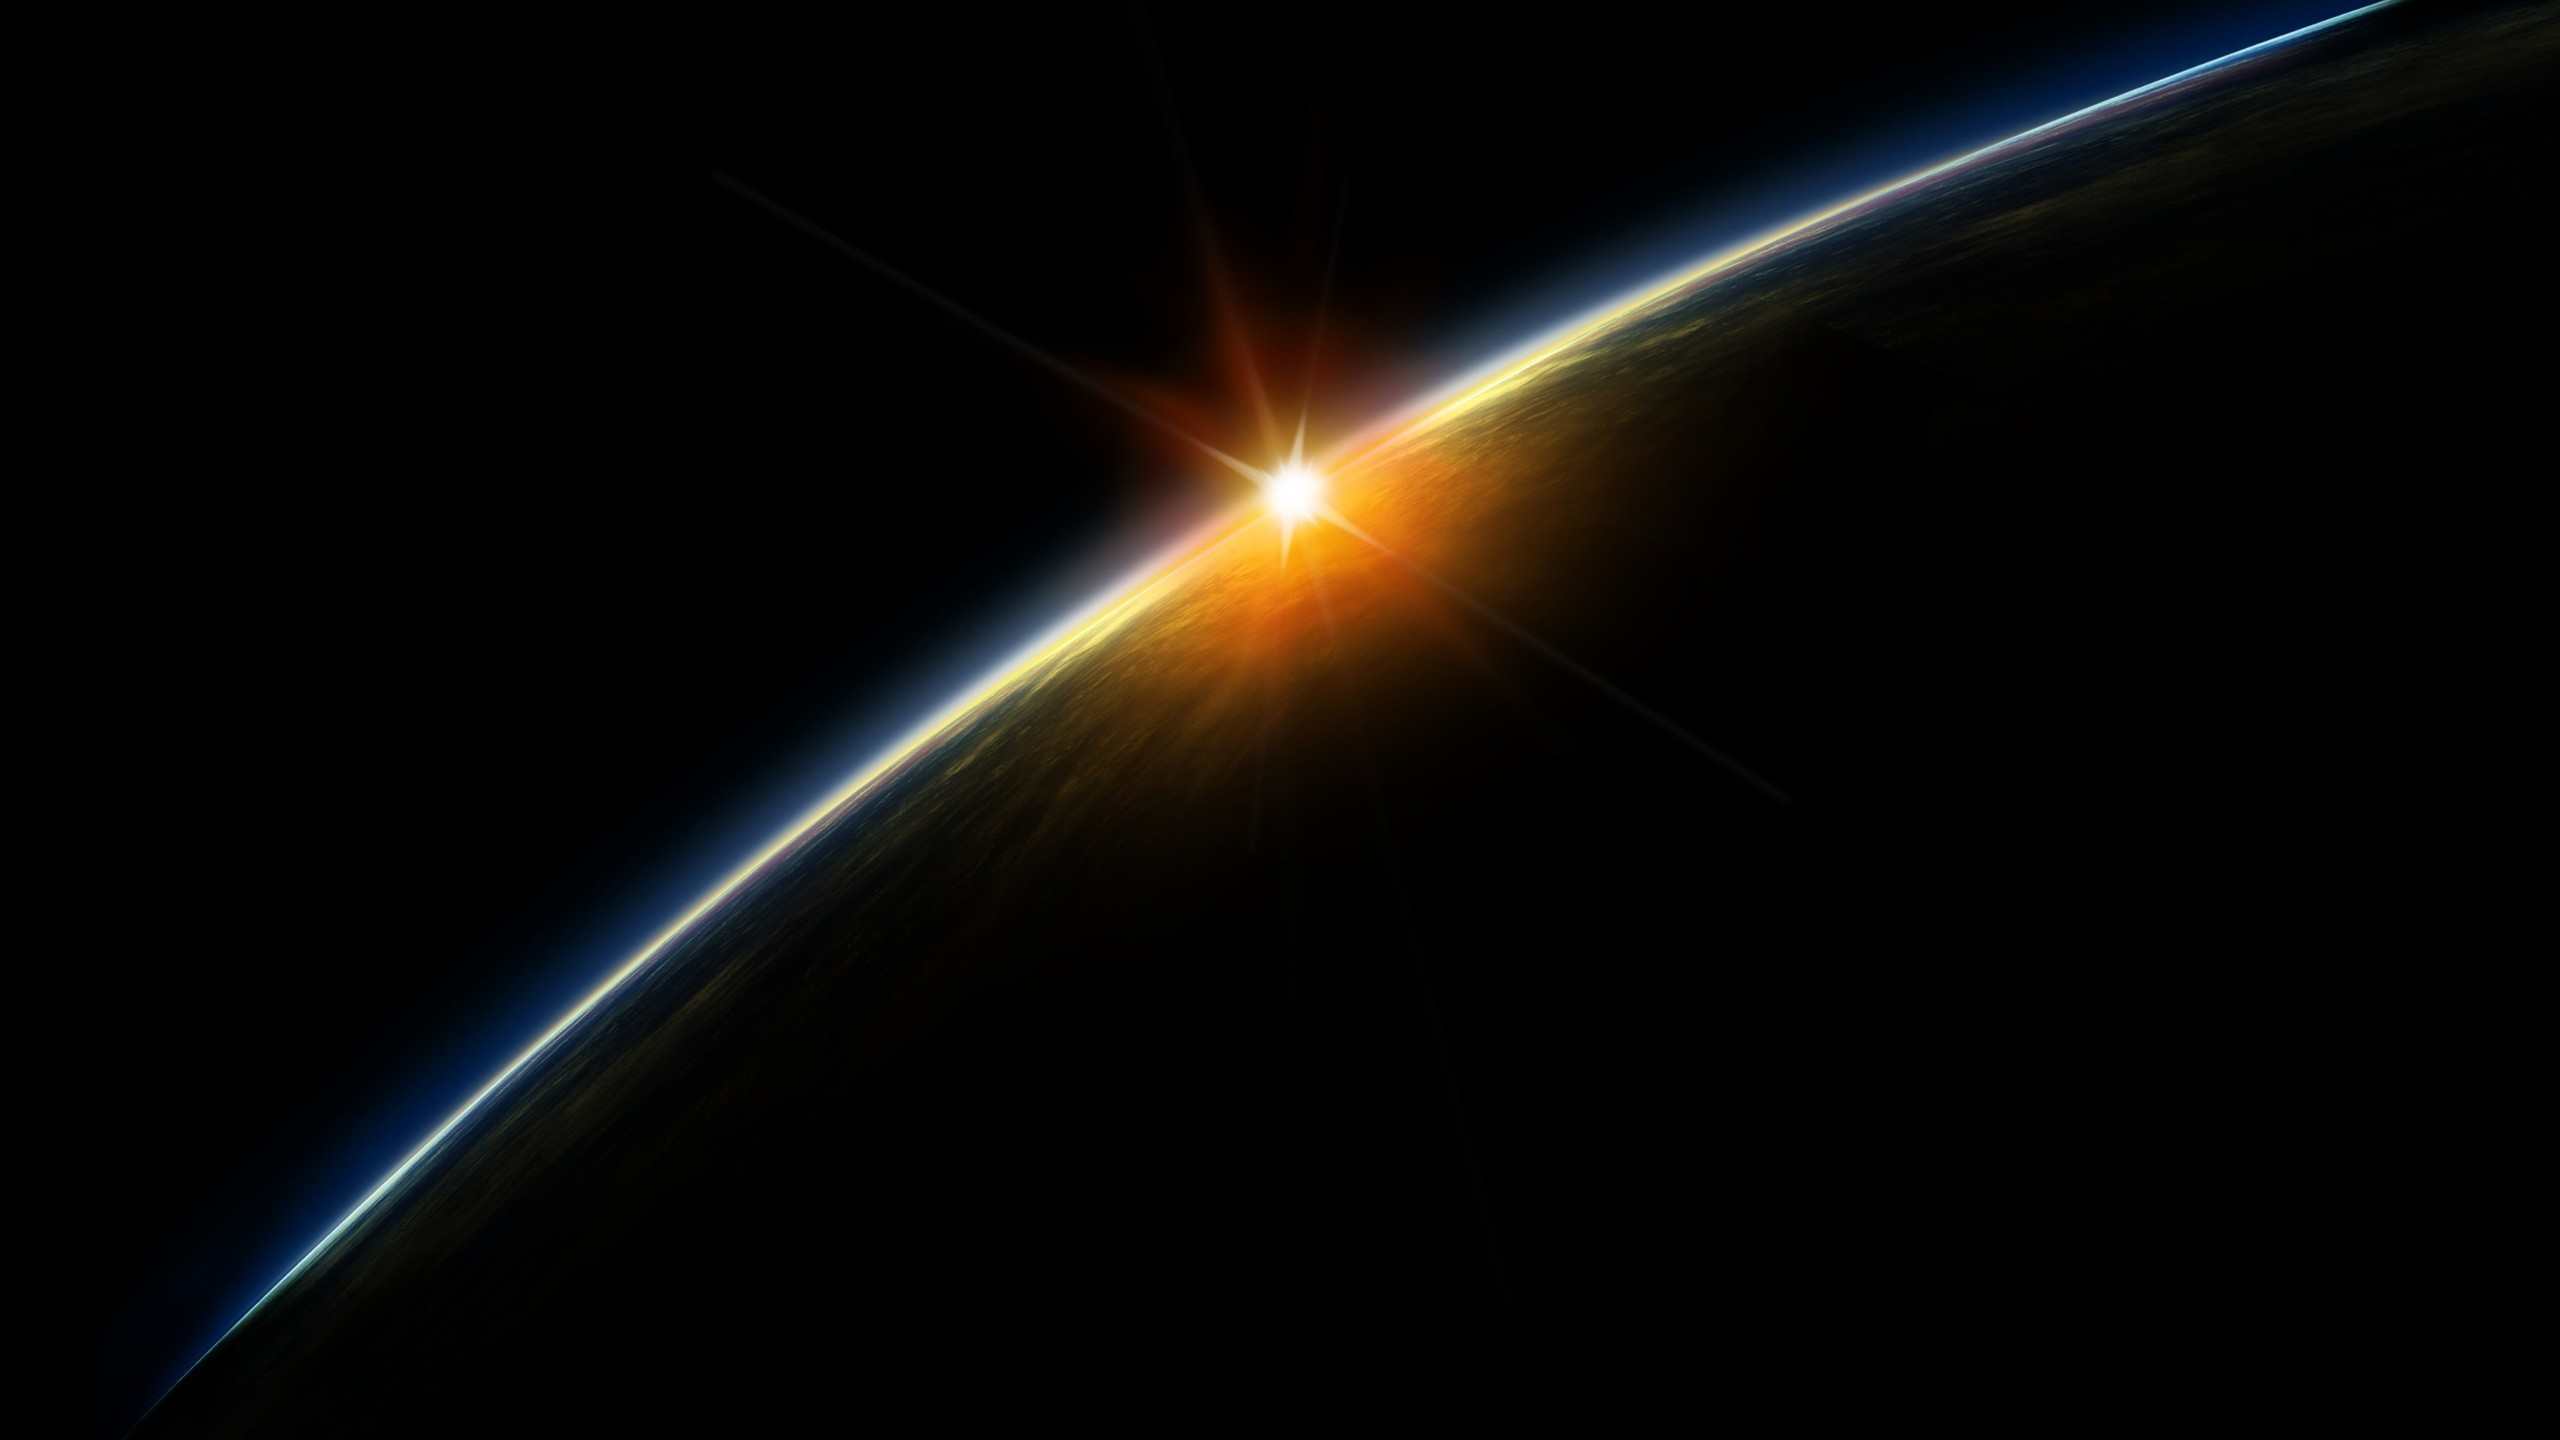 Sunrise from space. How to set wallpaper on your desktop? Click  the download link from above and set the wallpaper on the desktop from your  OS.